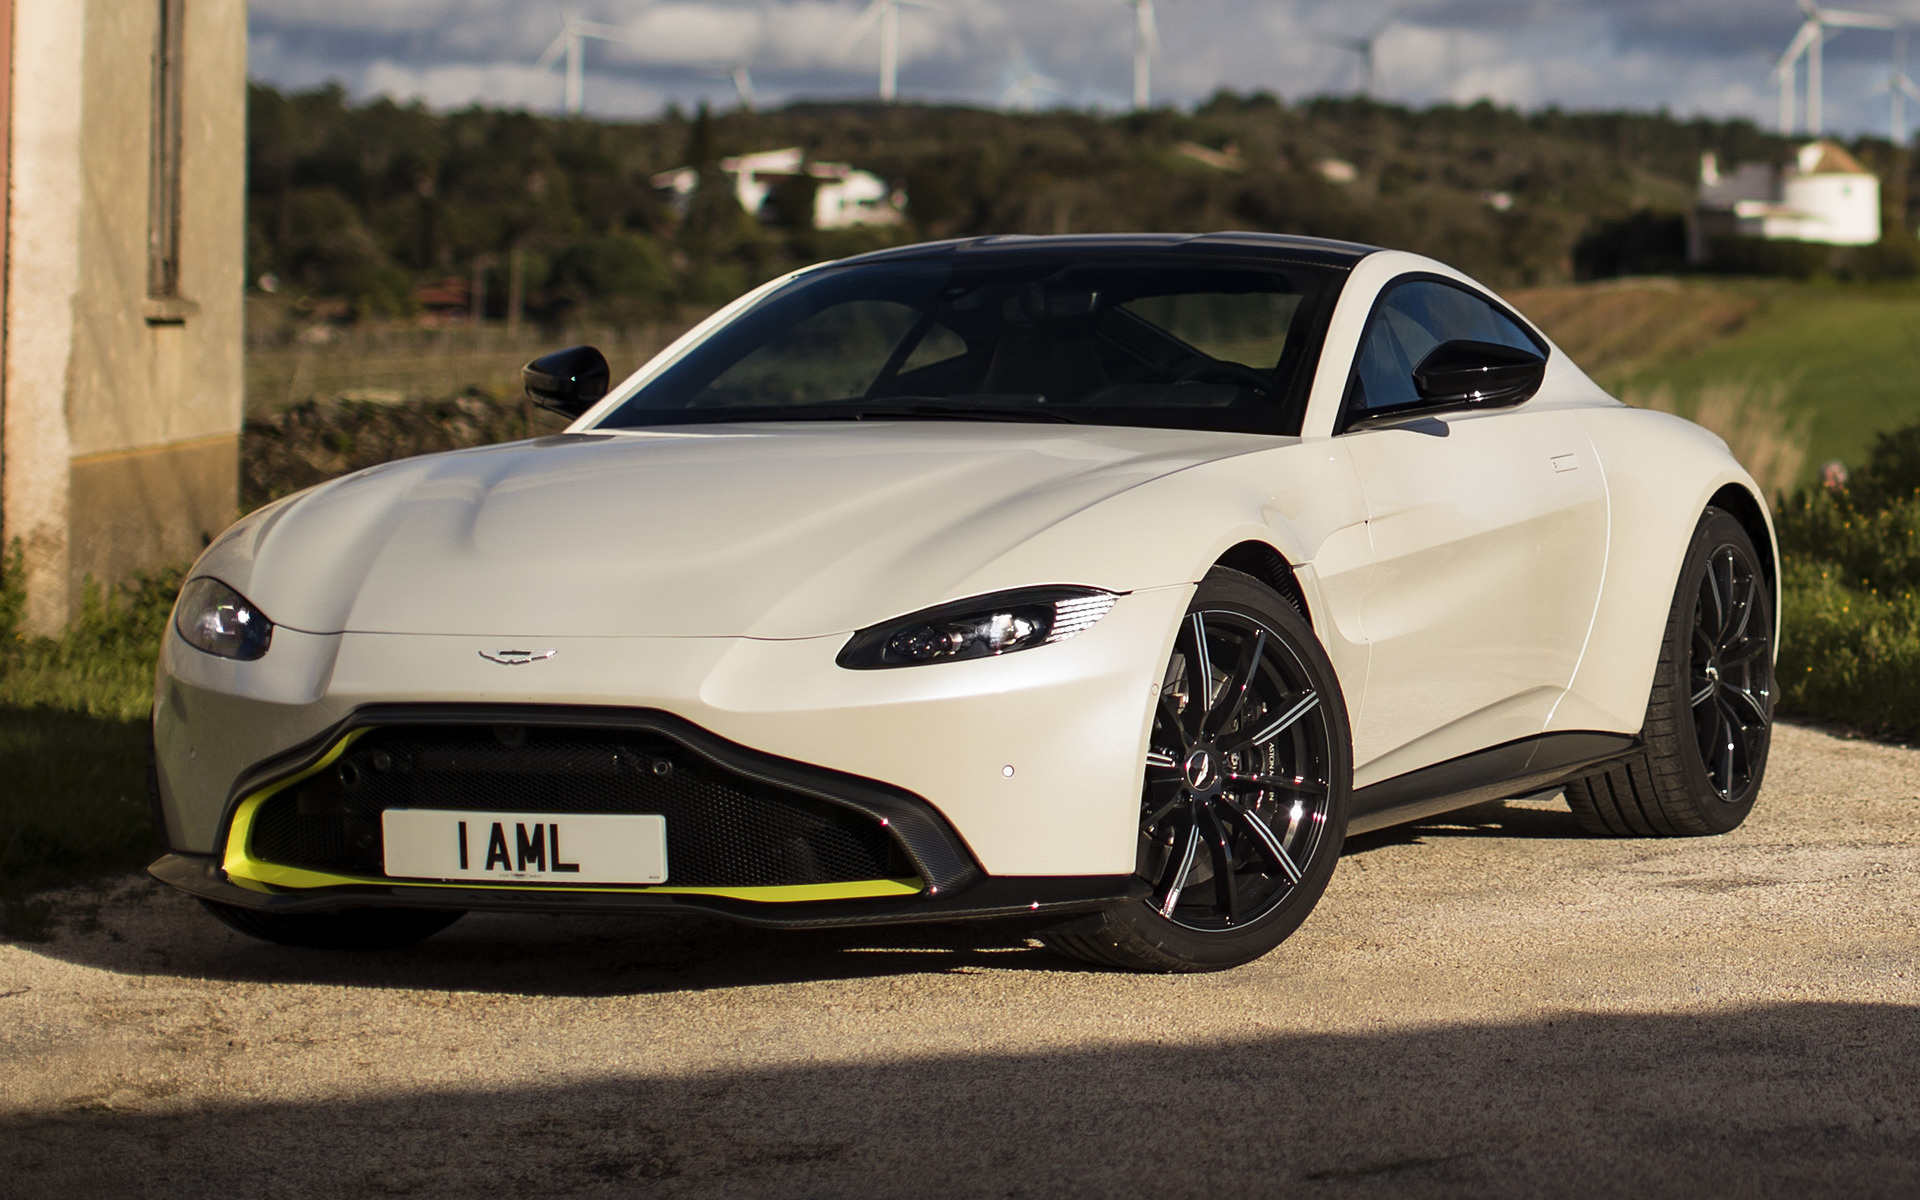 2018 Aston Martin Vantage   Wallpapers and HD Images Car Pixel 1920x1200